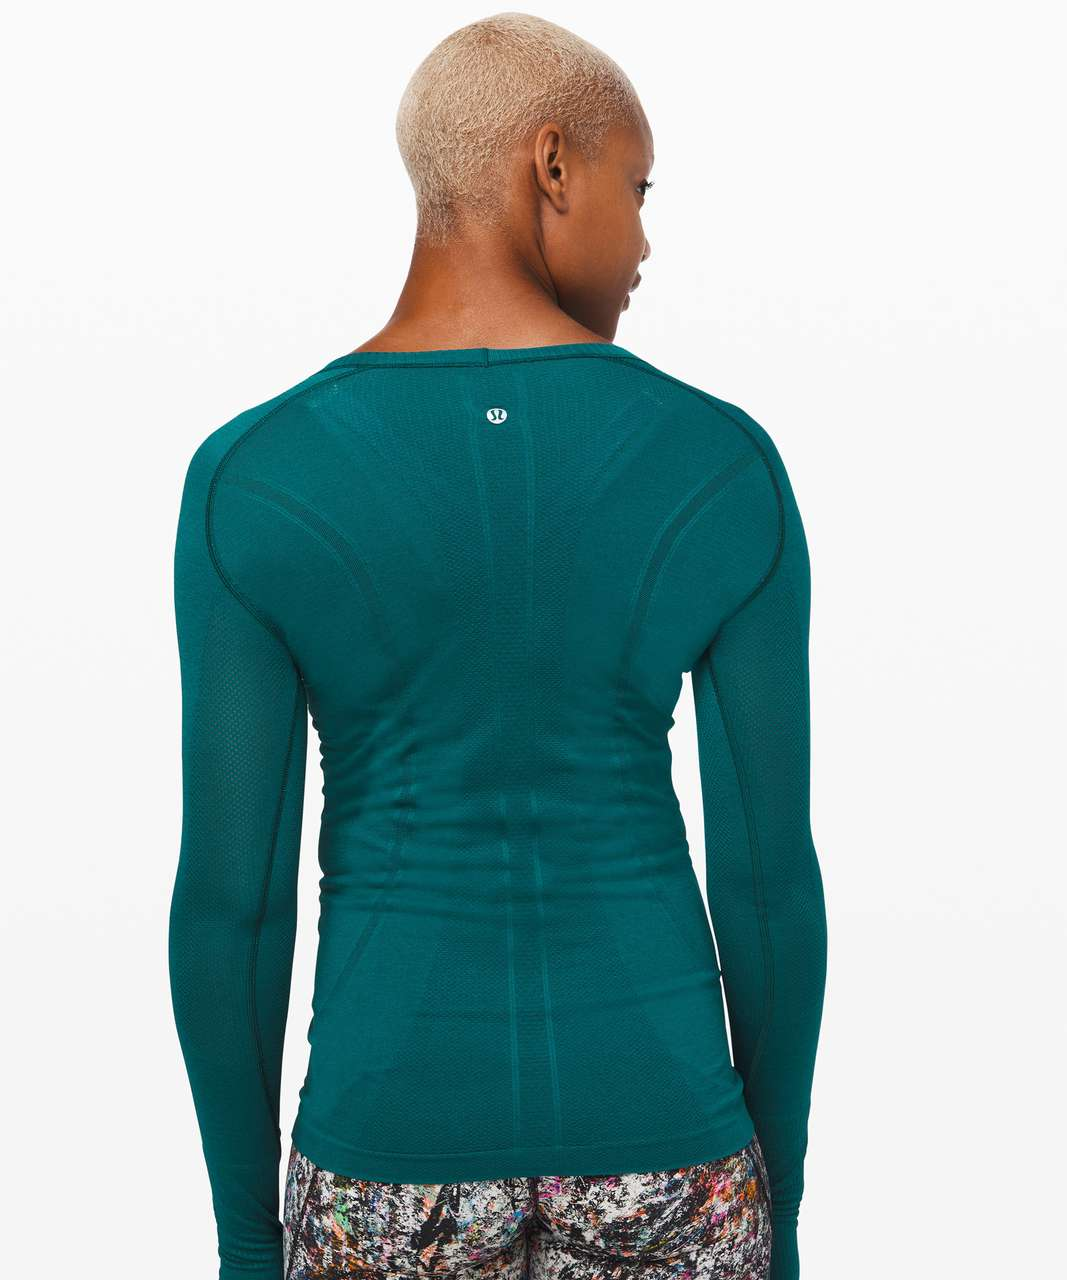 Lululemon Swiftly Tech Long Sleeve Crew - Emerald / Emerald